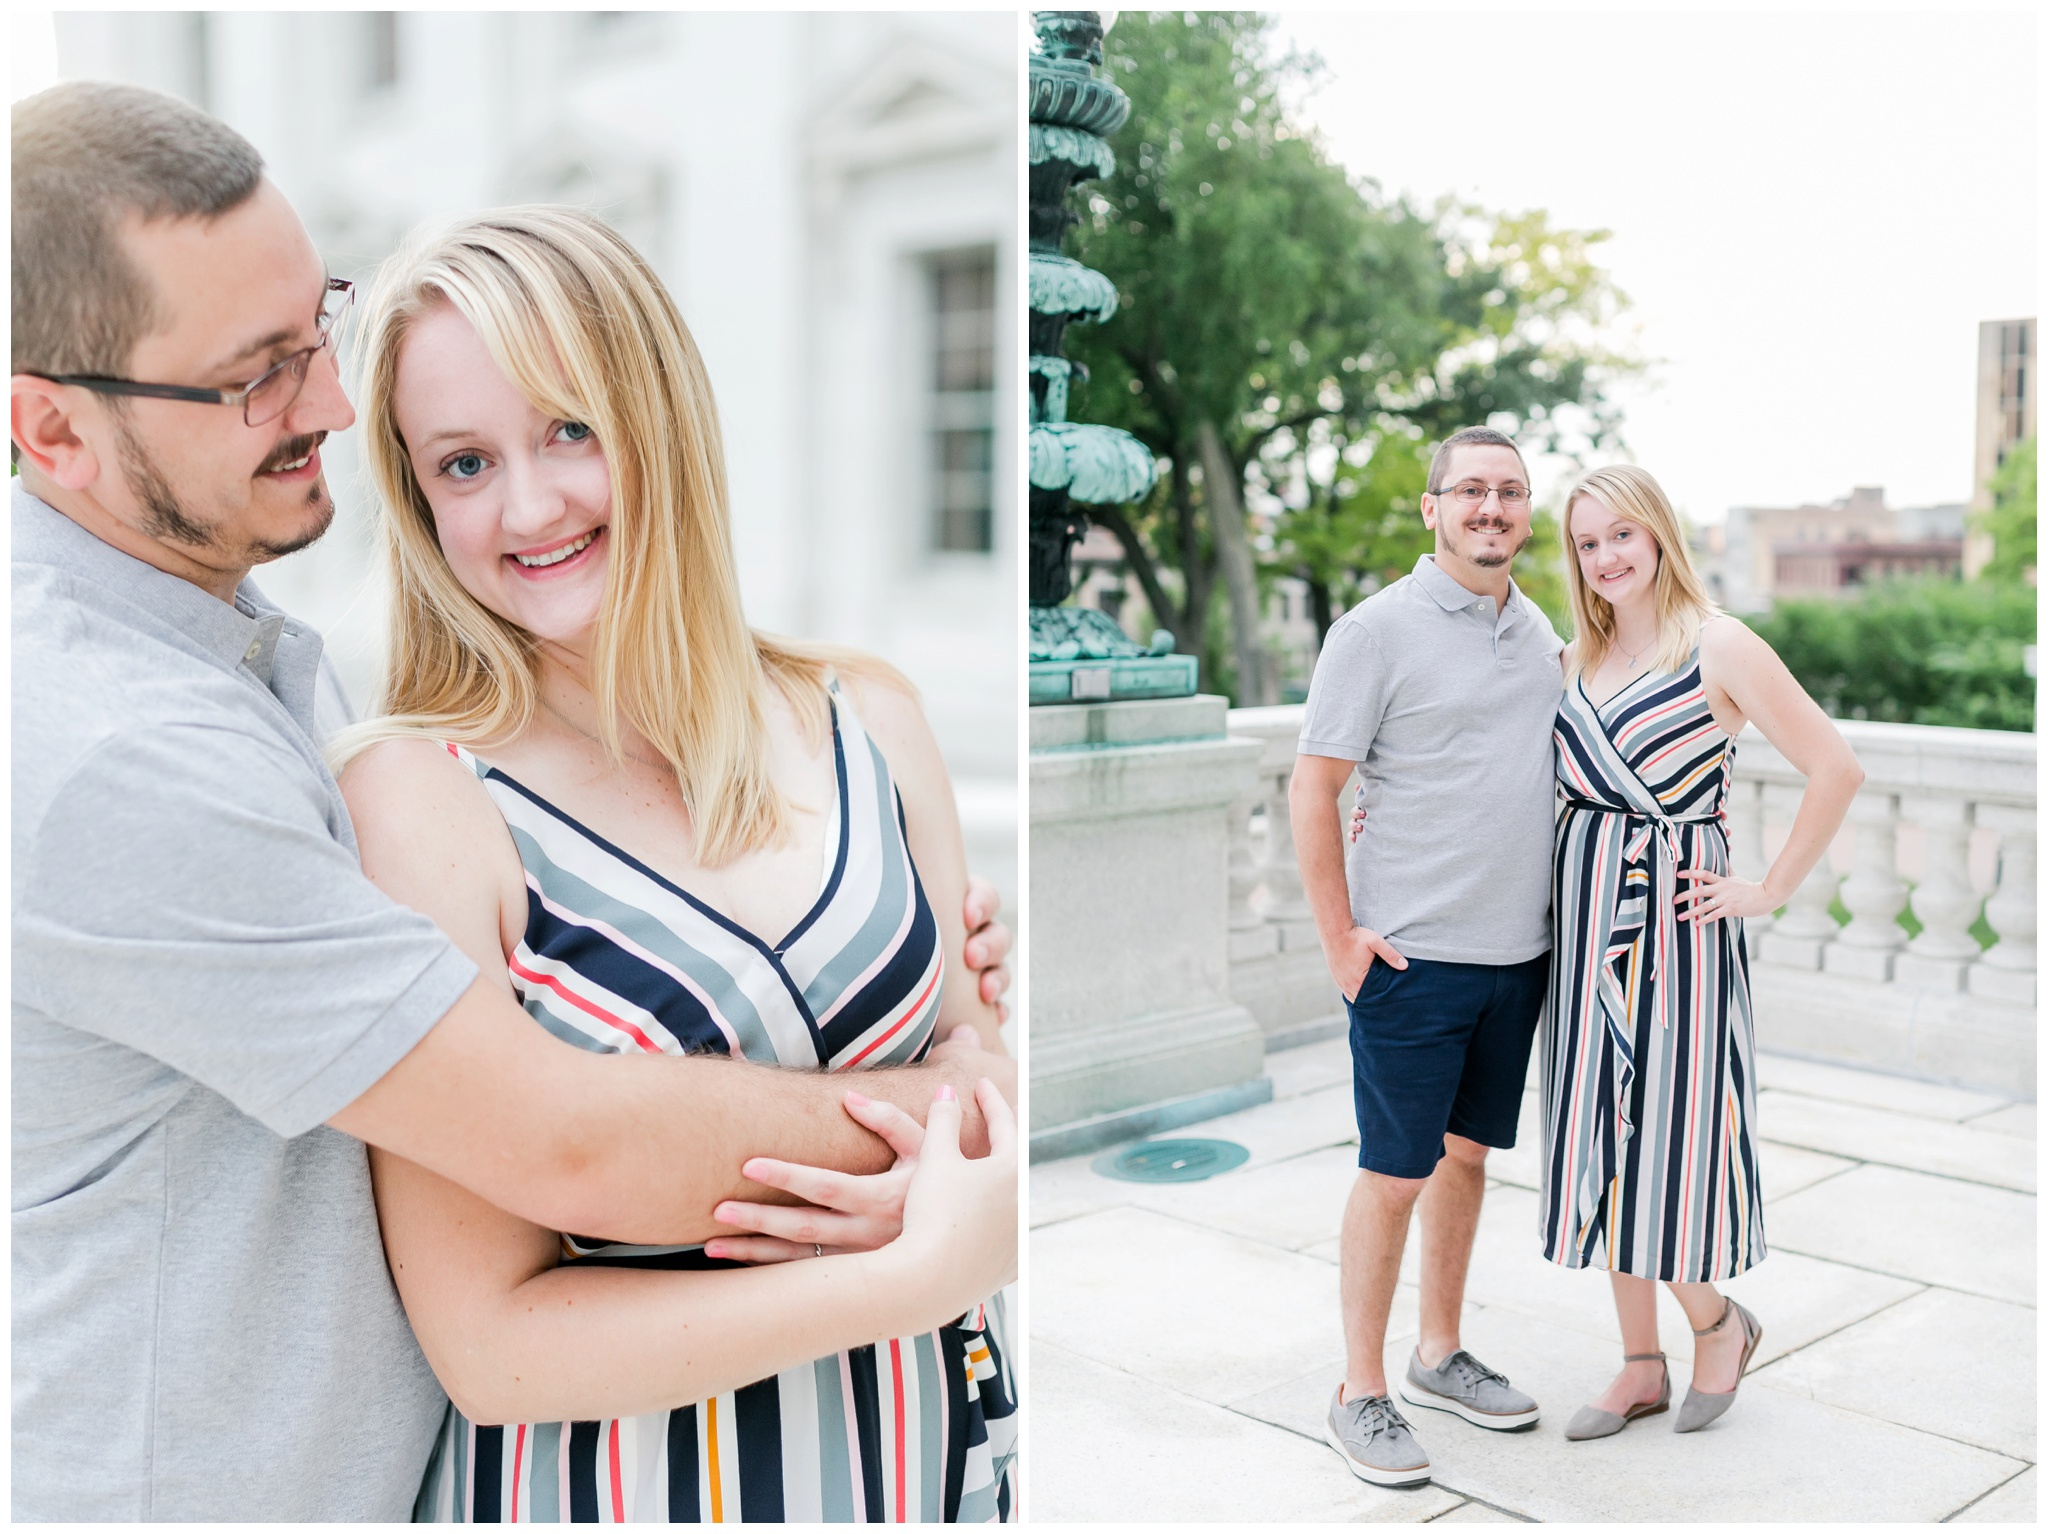 Downtown_madison_wisconsin_engagement_session_4218.jpg